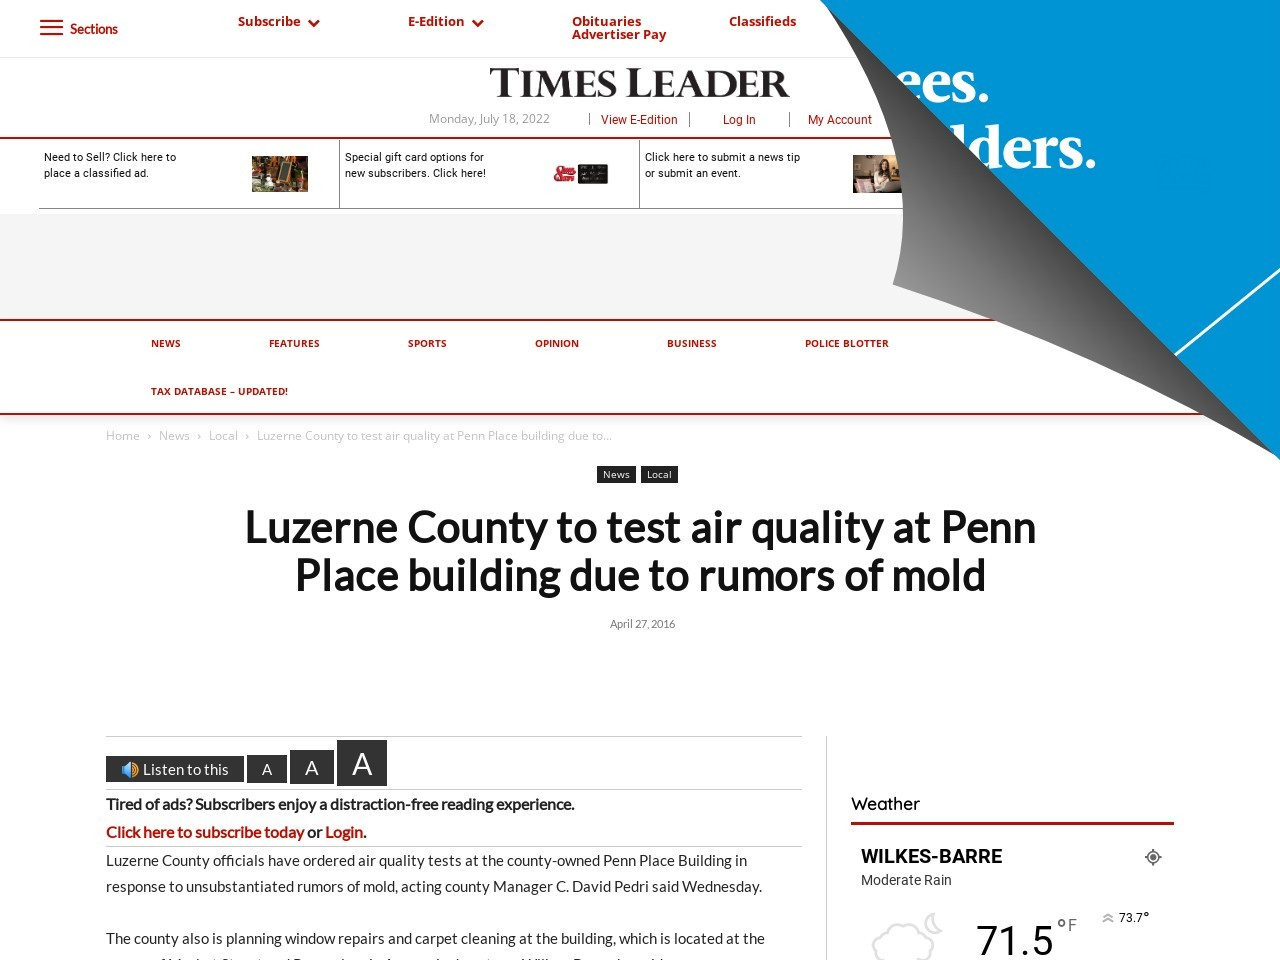 Luzerne County to test air quality at Penn Place building due to rumors of mold